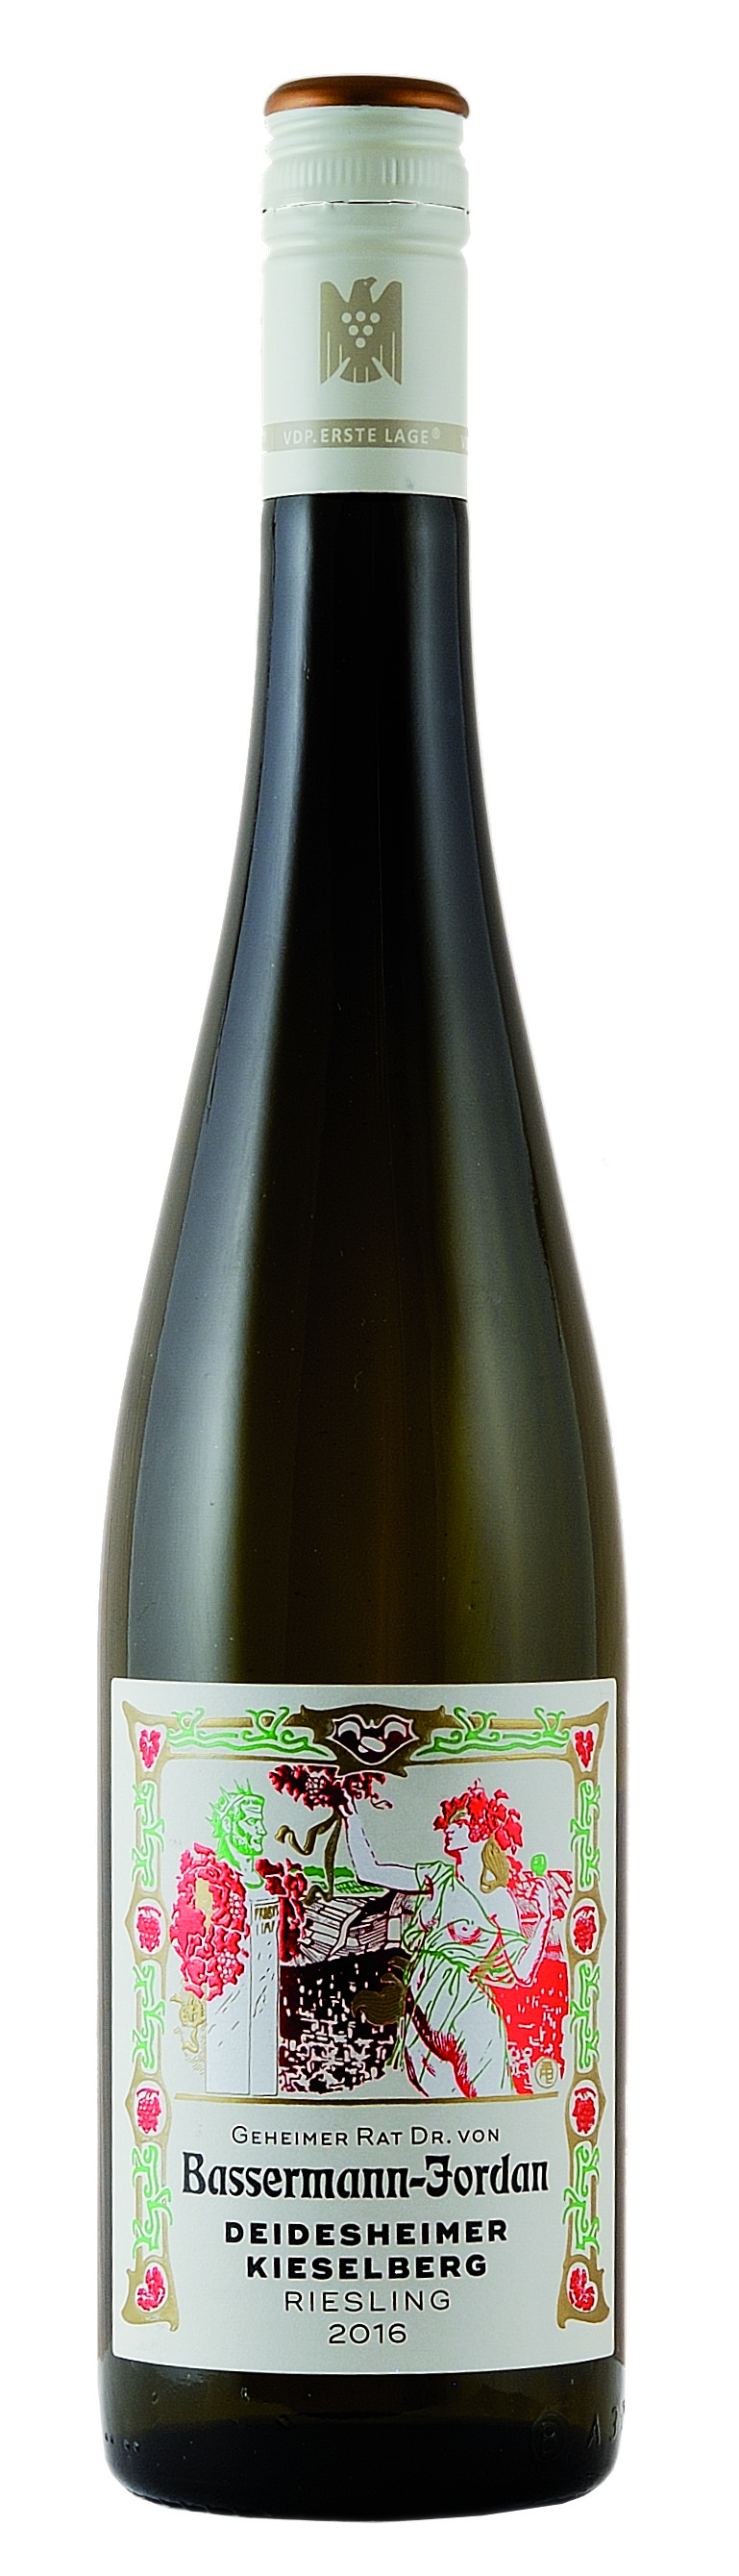 popular stores authentic new high quality Details zu Deidesheimer Kieselberg Riesling trocken Erste Lage - 2016  Bassermann-Jordan